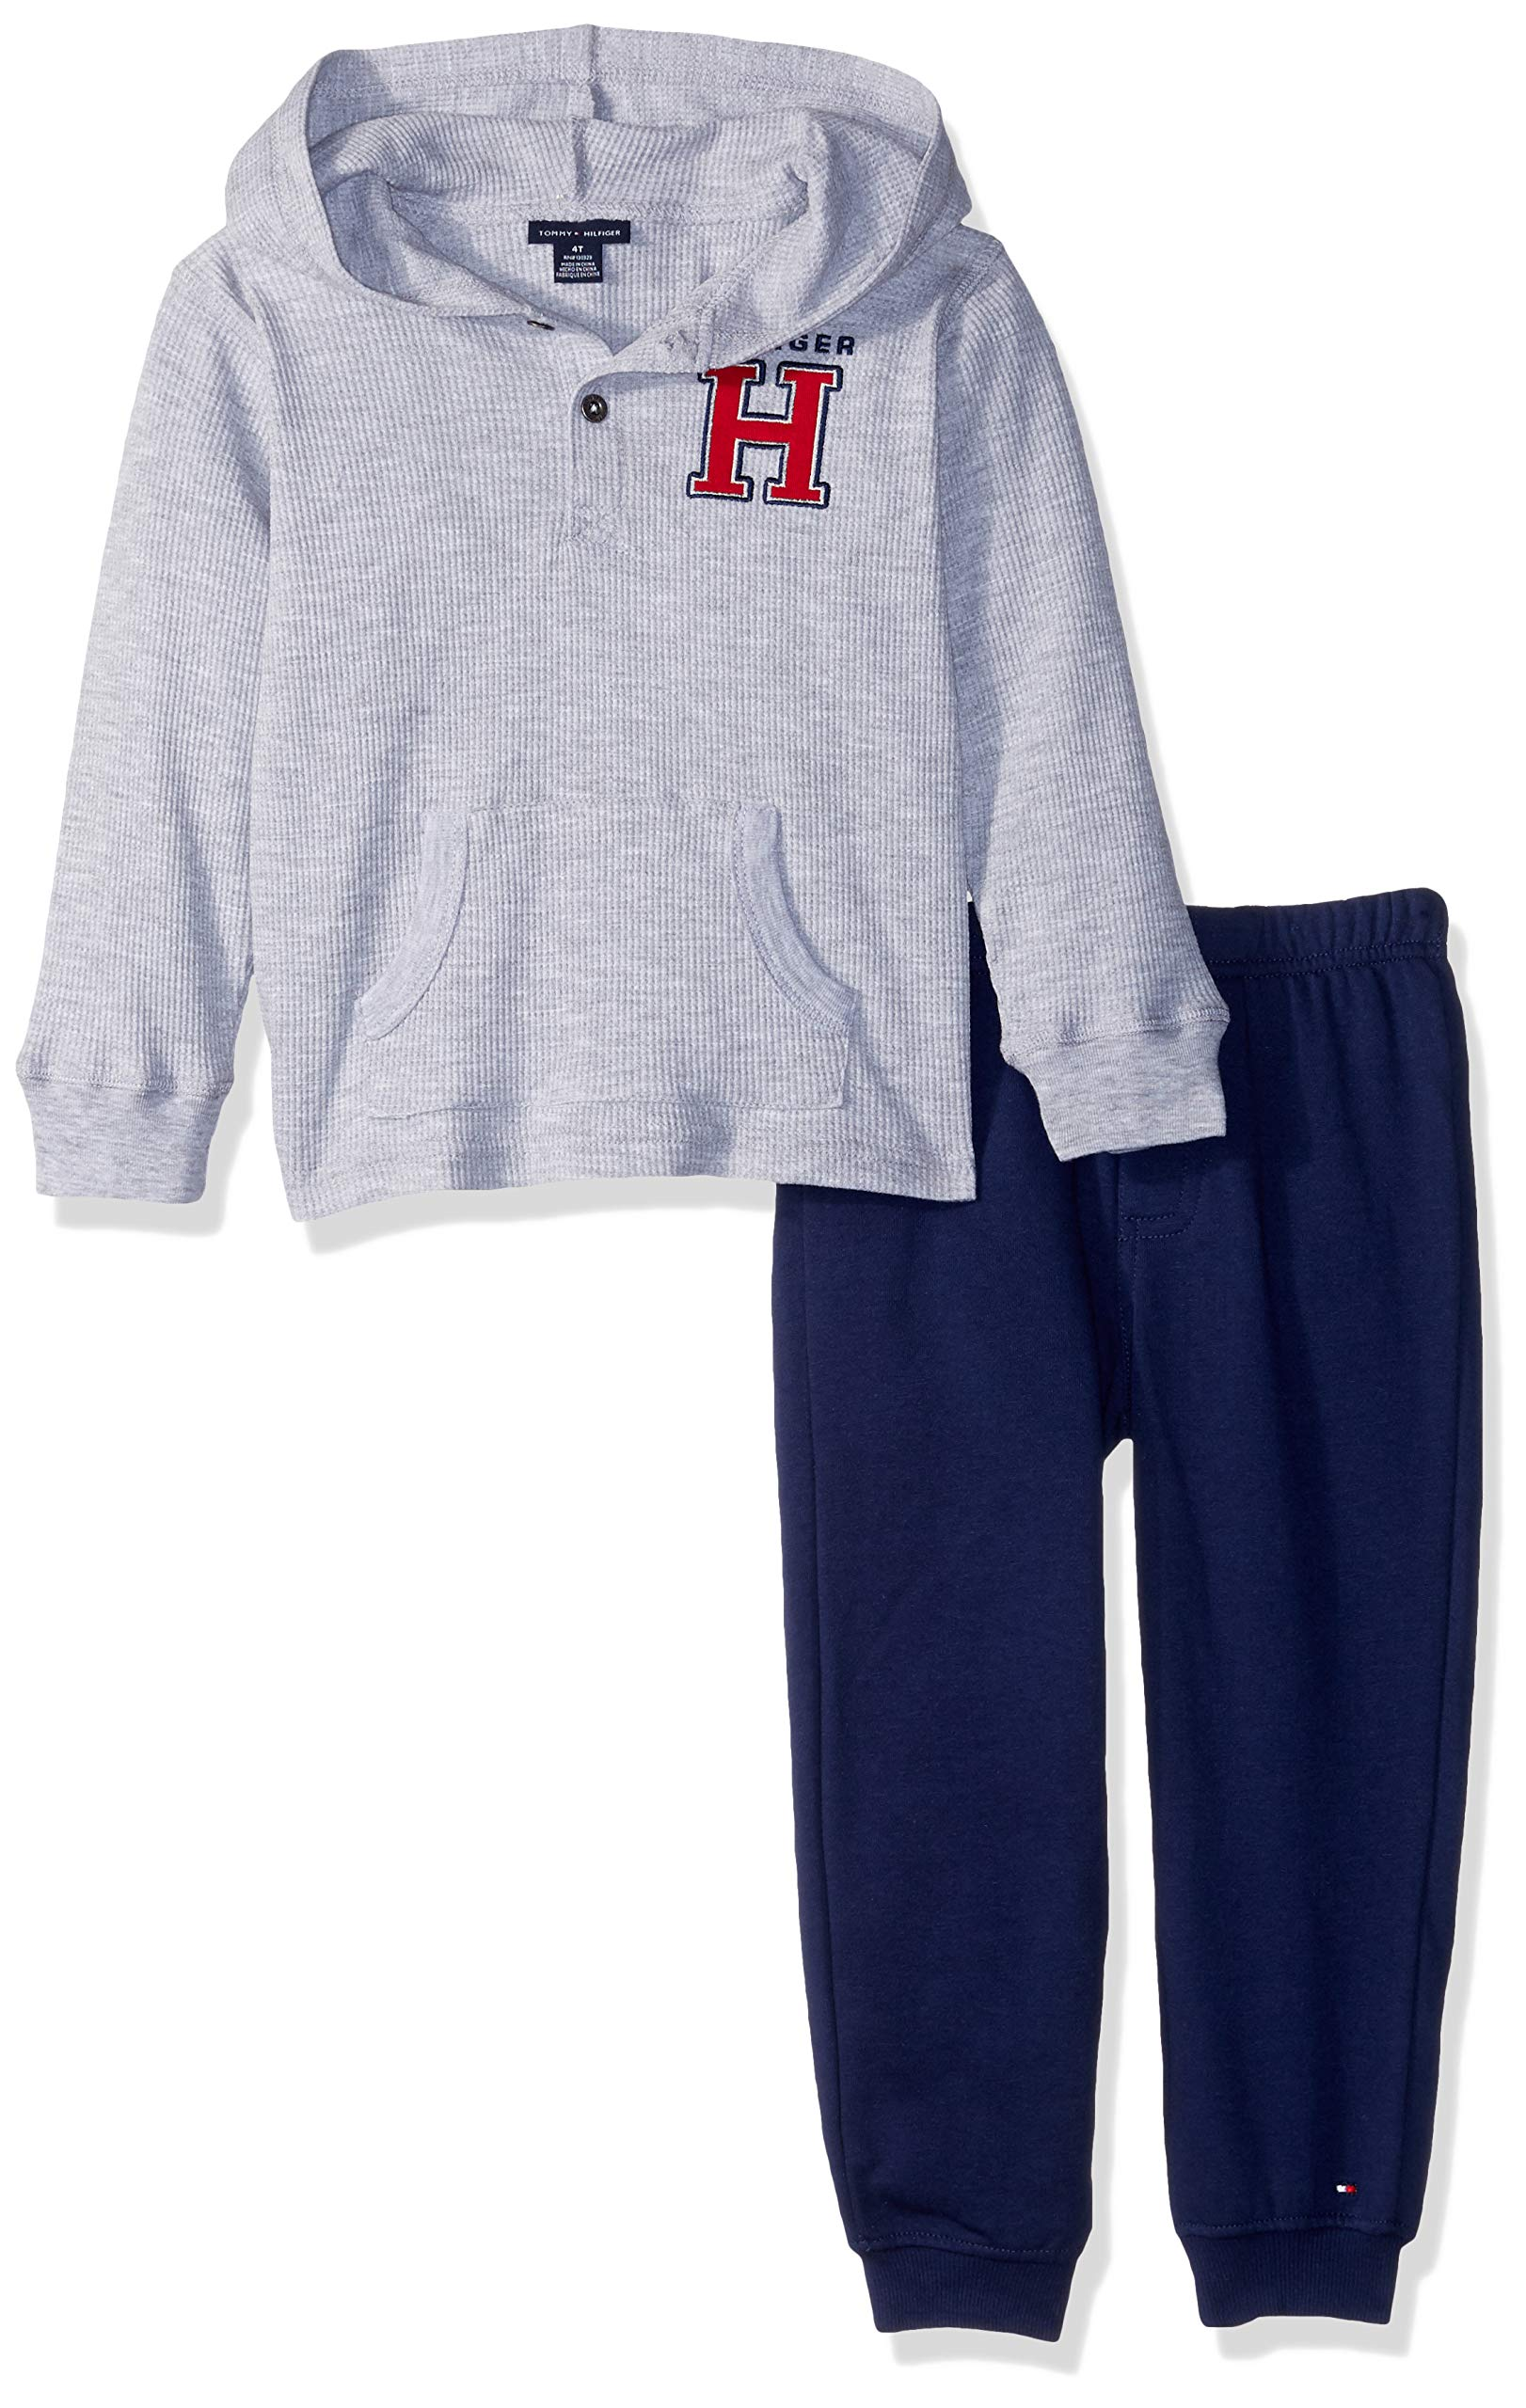 Tommy Hilfiger Boys' Toddler 2 Pieces Hooded Pant Set, Gray/Navy, 2T